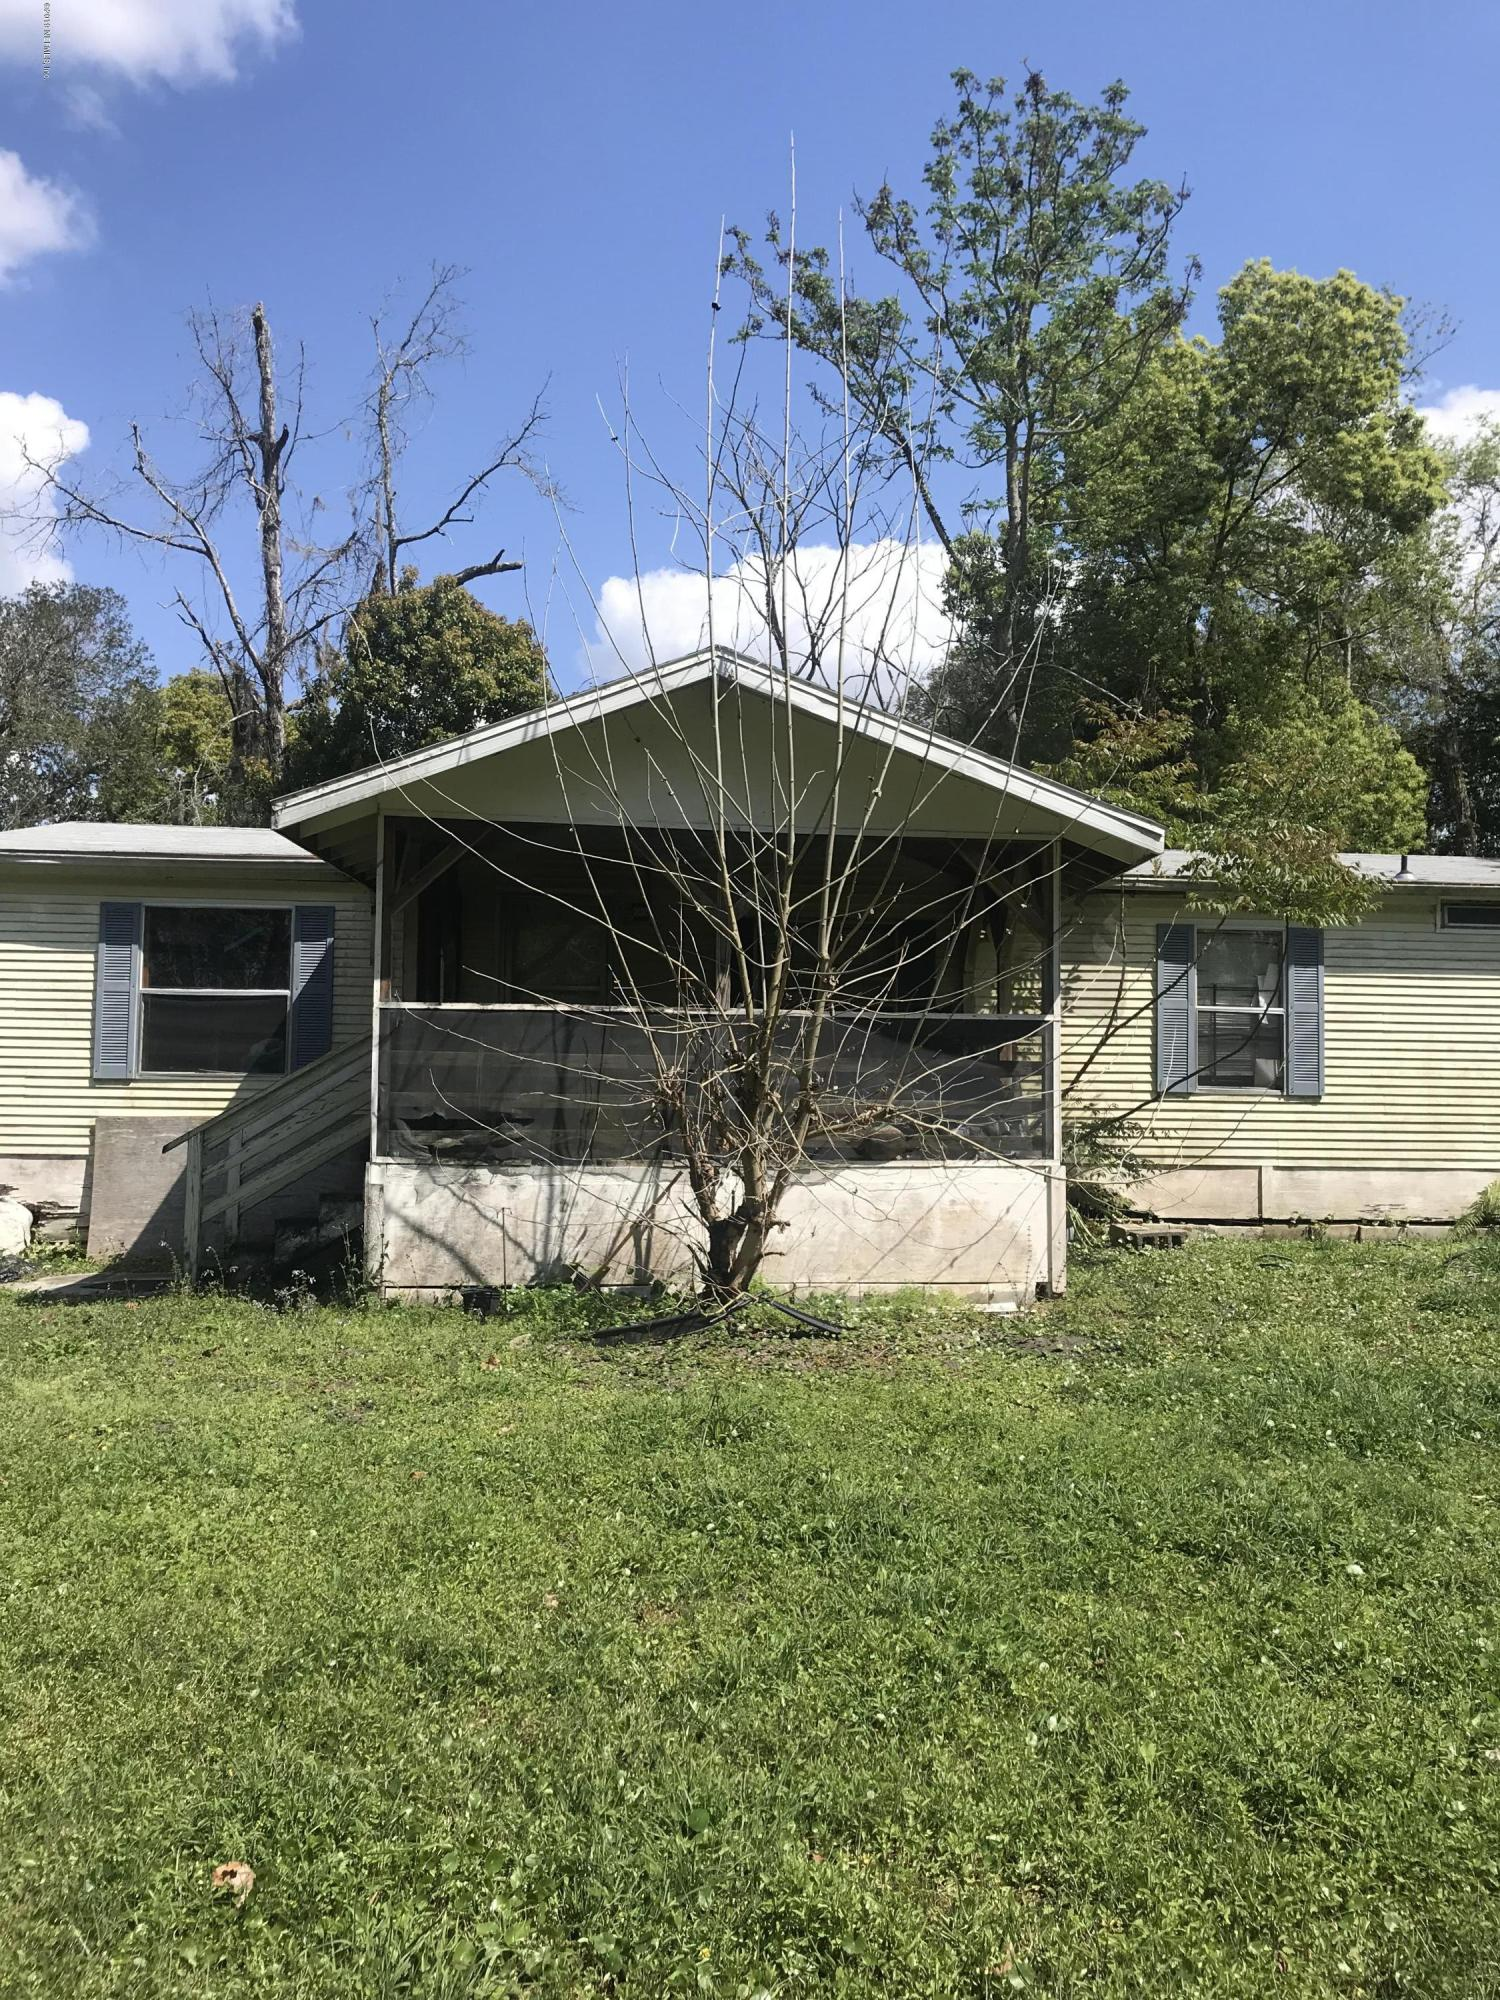 10441 CRAIG, JACKSONVILLE, FLORIDA 32225, 3 Bedrooms Bedrooms, ,2 BathroomsBathrooms,Residential - mobile home,For sale,CRAIG,984868